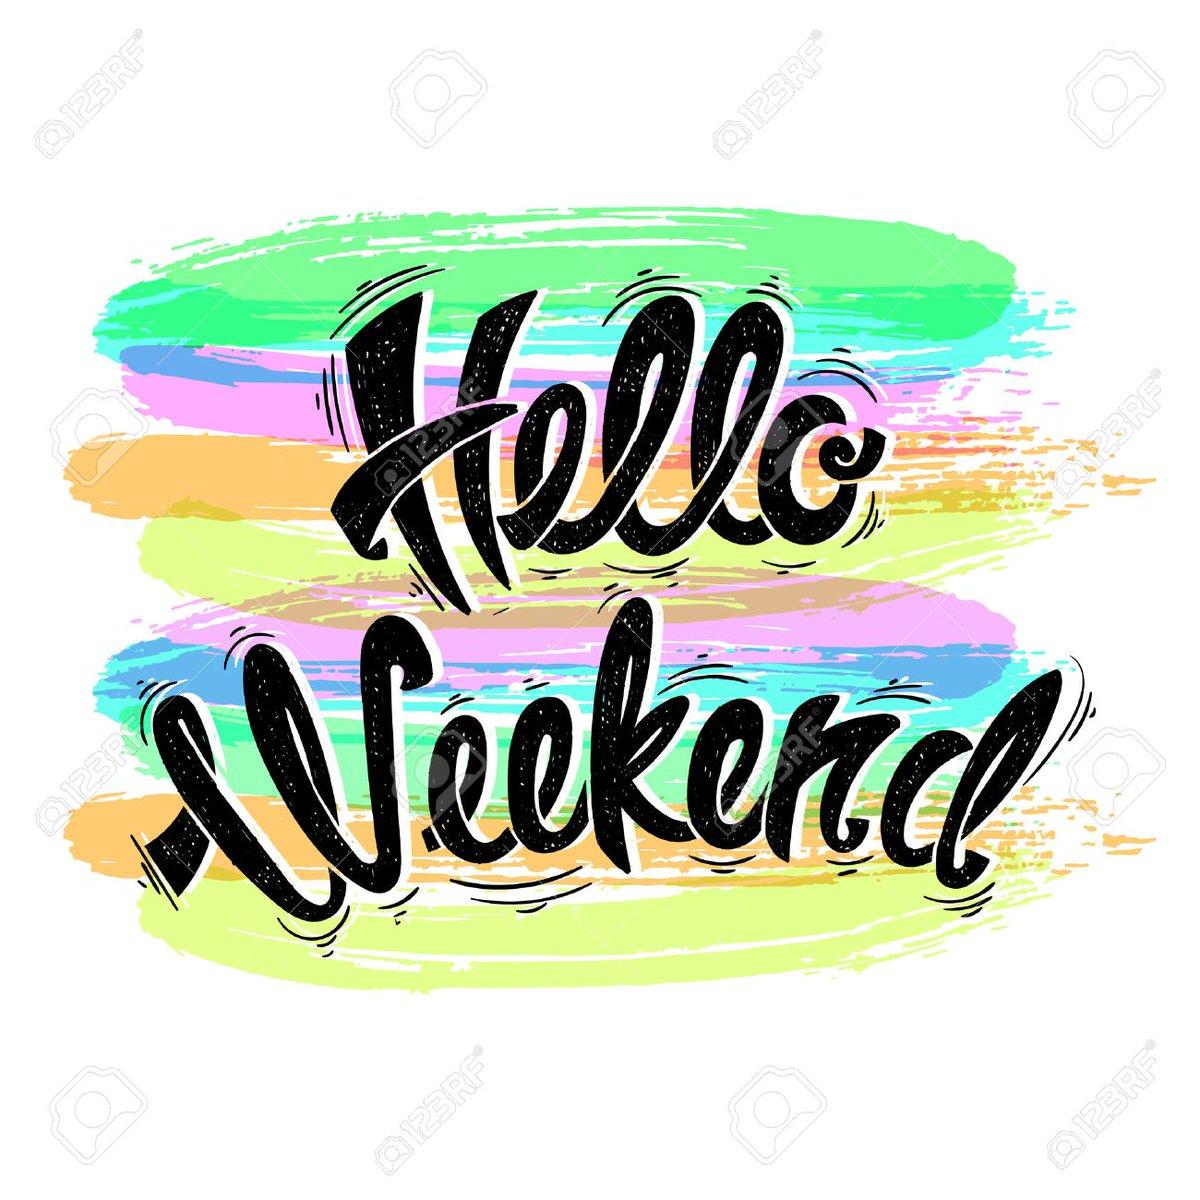 Hello Weekend! Happy Weekend! Have a good rest and prepare for the excited new week!   Want to find jewelry display and packaging designs and ideas? Pls visit   #customjewelrydisplay #jewelrybrand #jewelrydisplay #counterjewelrydisplay #jewelrypackaging